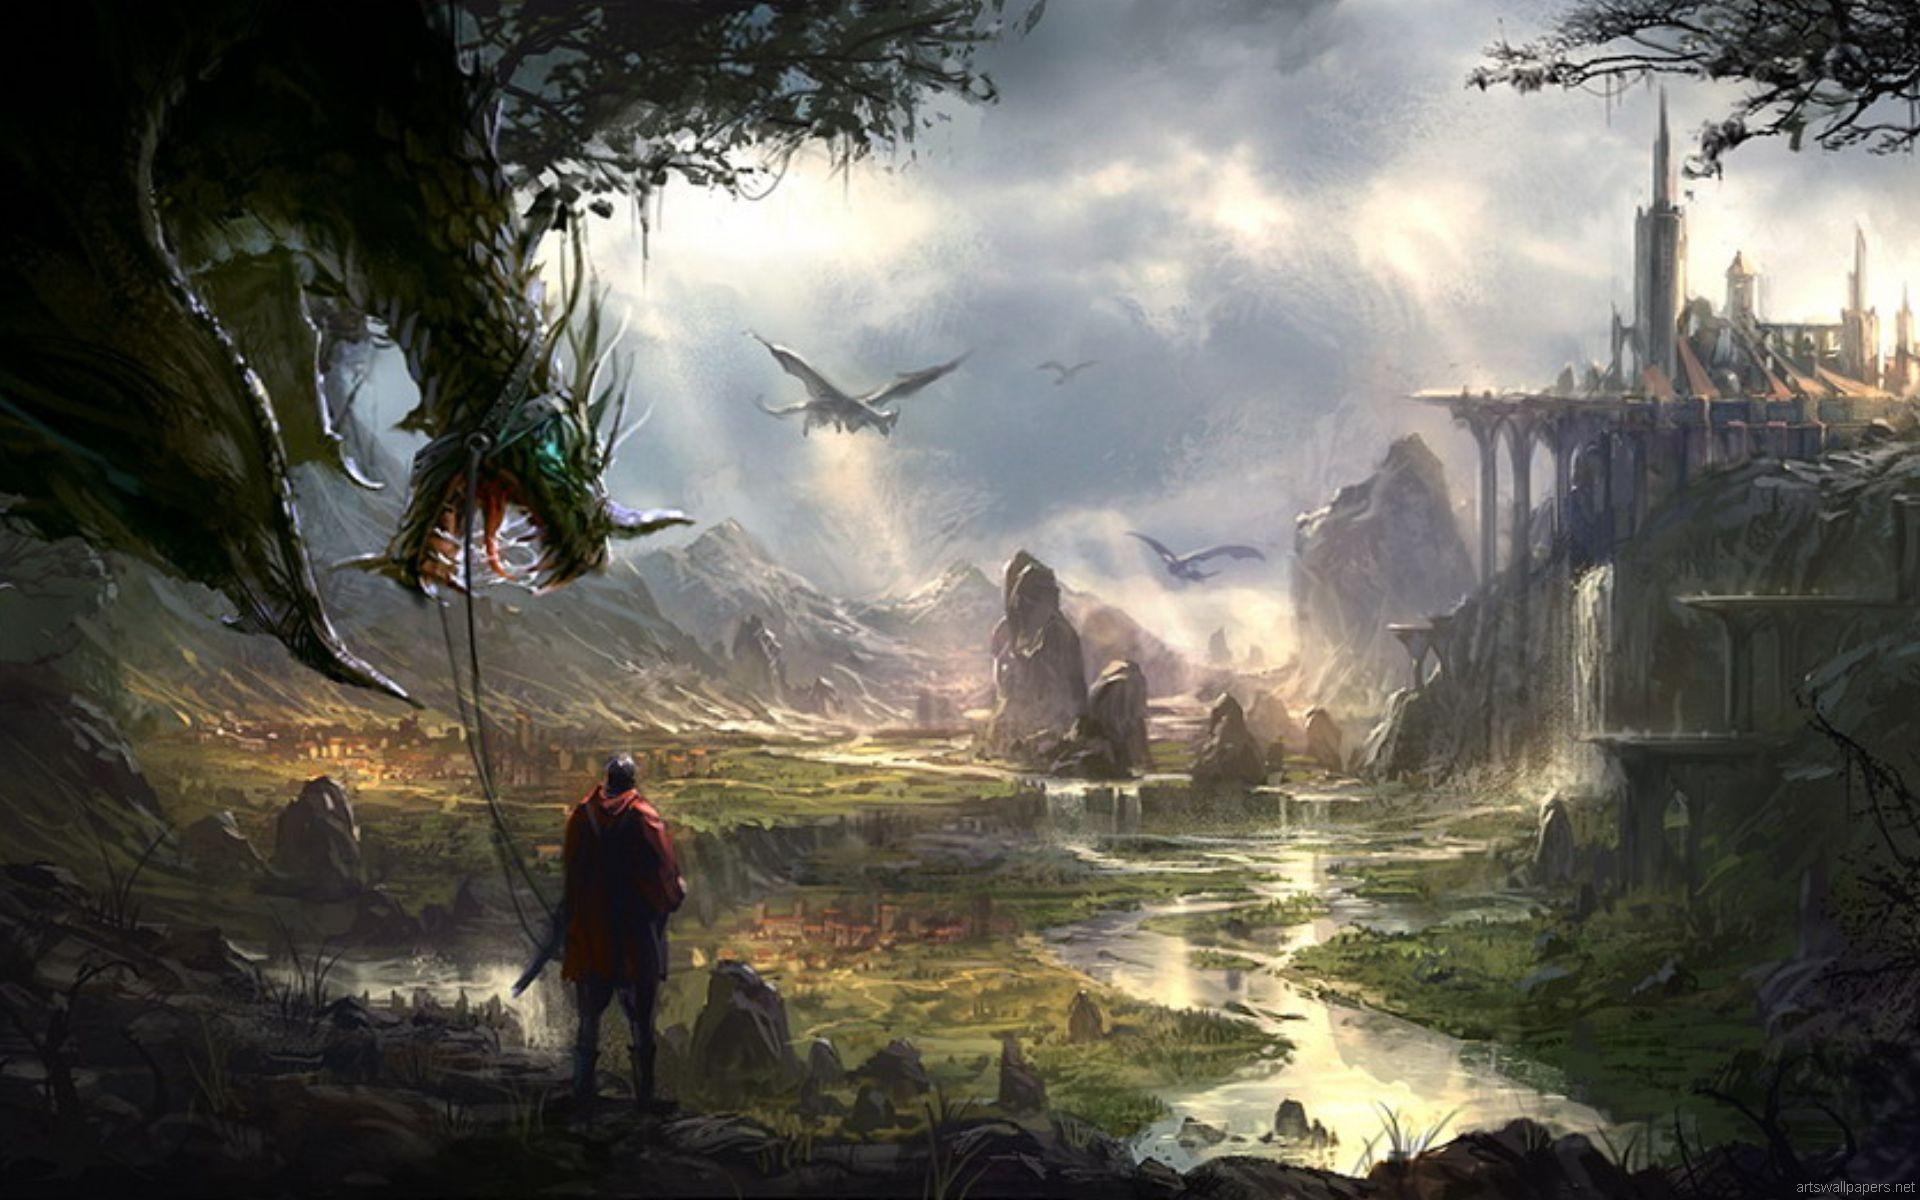 Collection of Free Fantasy Wallpapers For Desktop on HDWallpapers